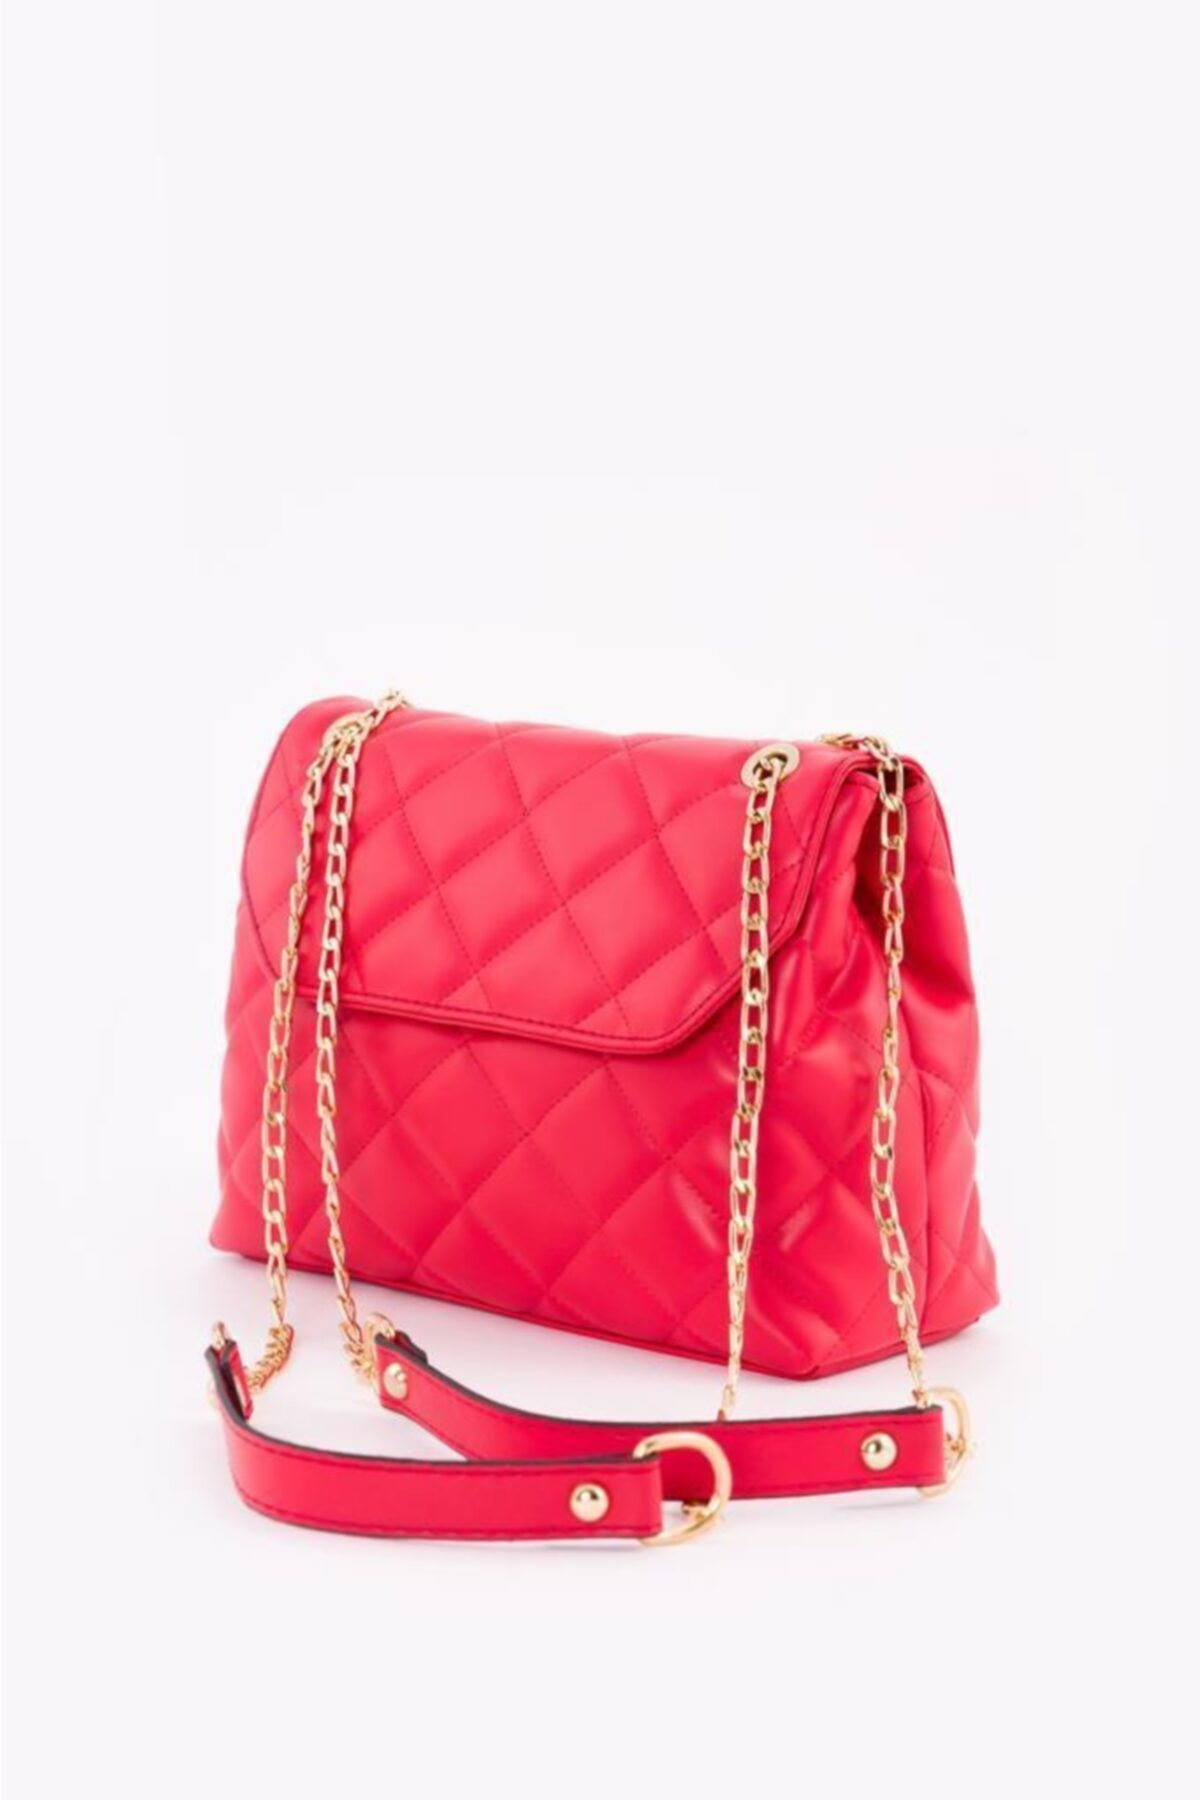 Red Quilted Women's Shoulder Bag 2021 Fashion Trend Shoulder Strap Waterproof Velvet Leather Casual Women's Shoulder Bag